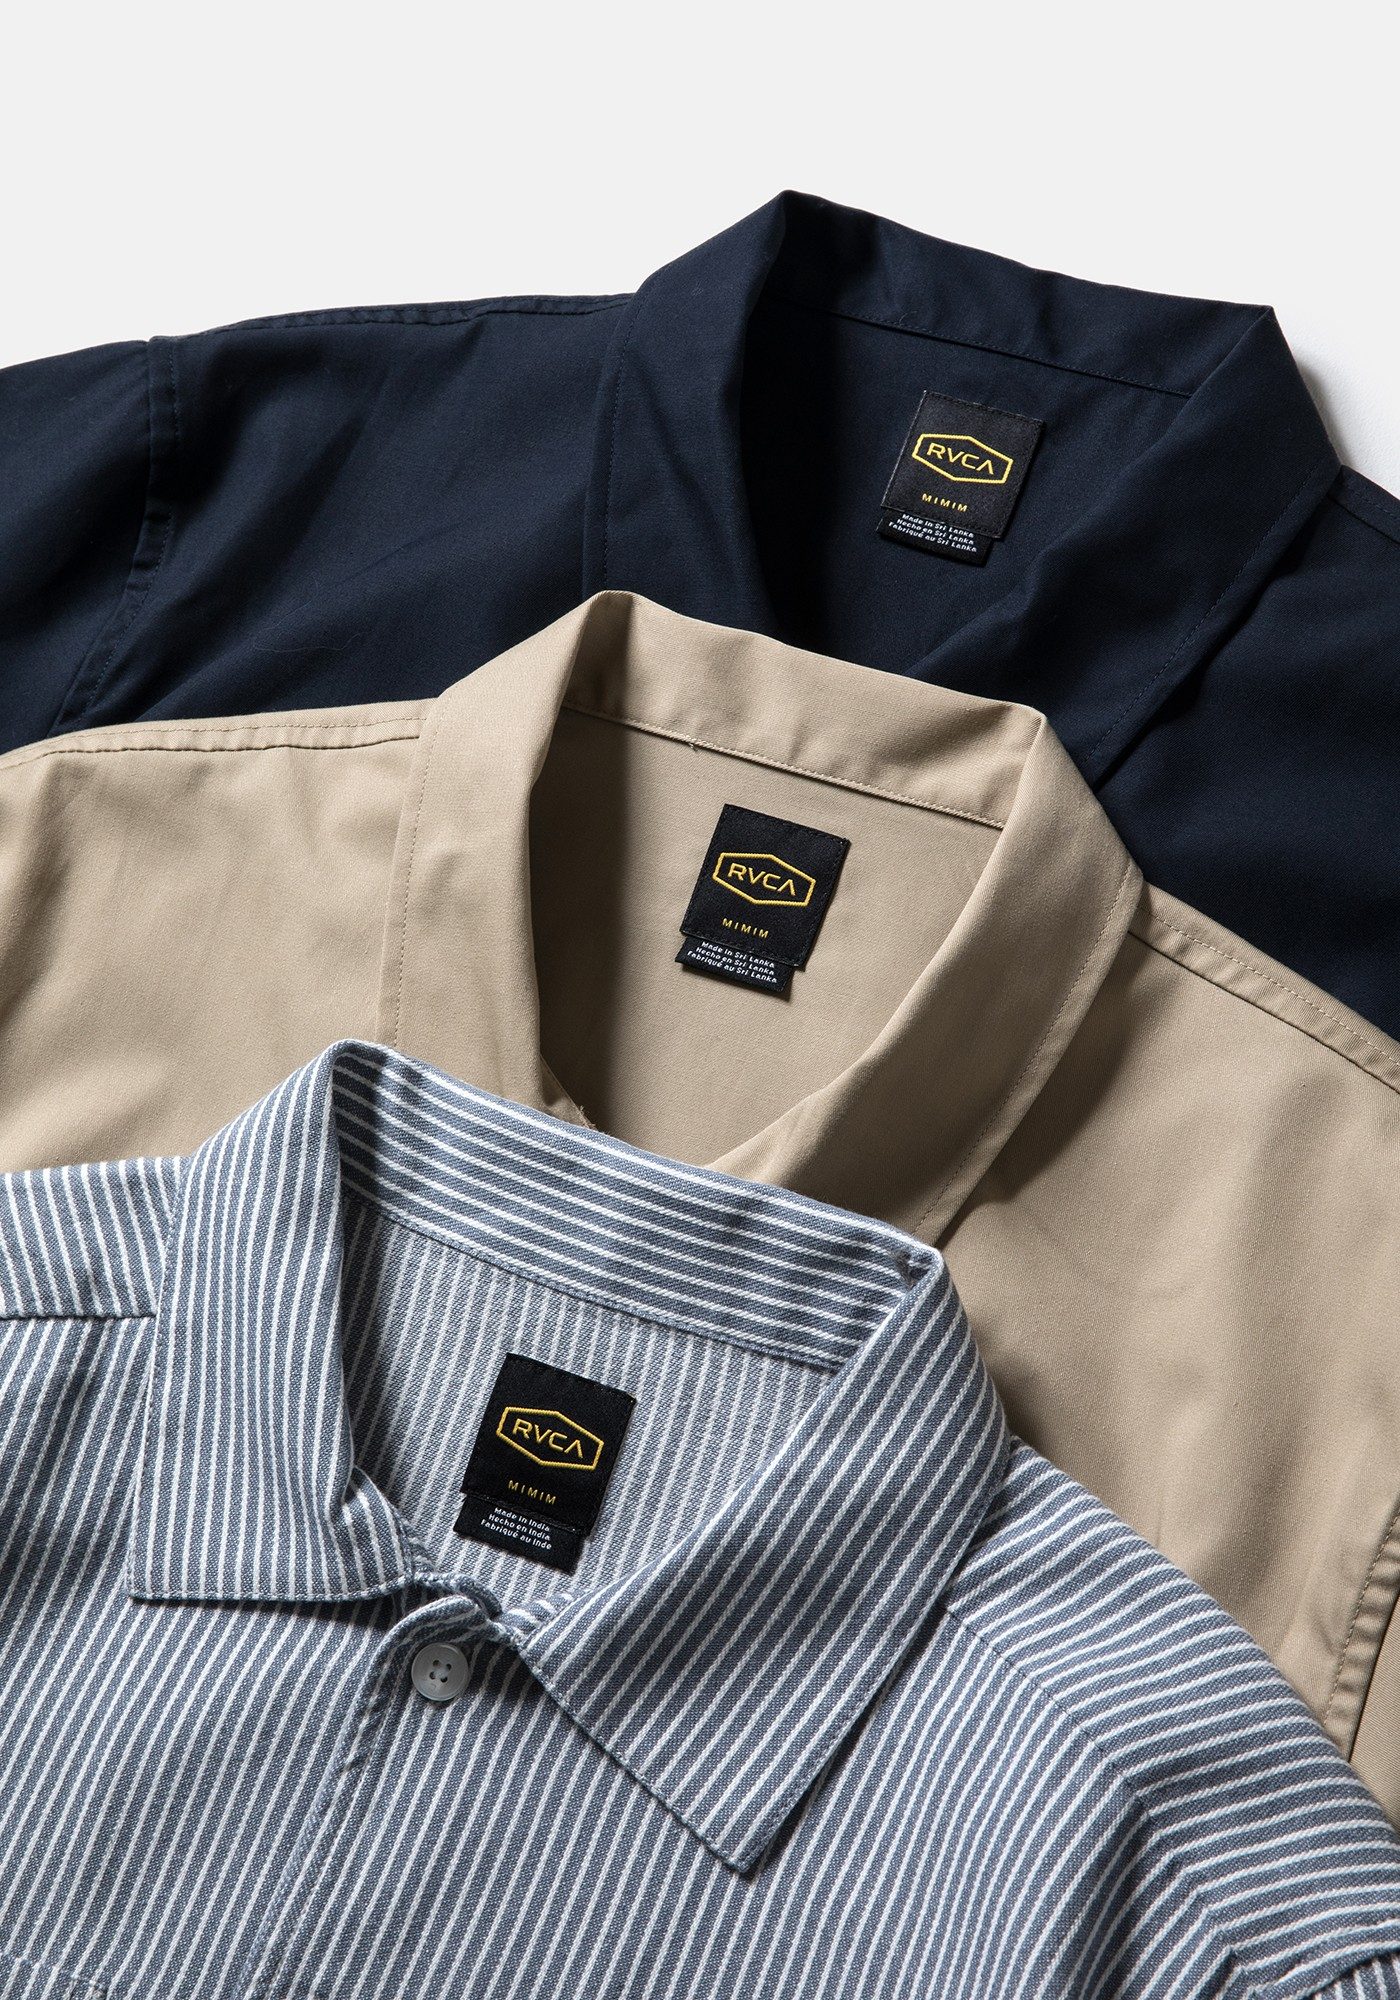 the recession collection combines clean & understated design, durable fabrication and modern takes on timeless workwear pieces